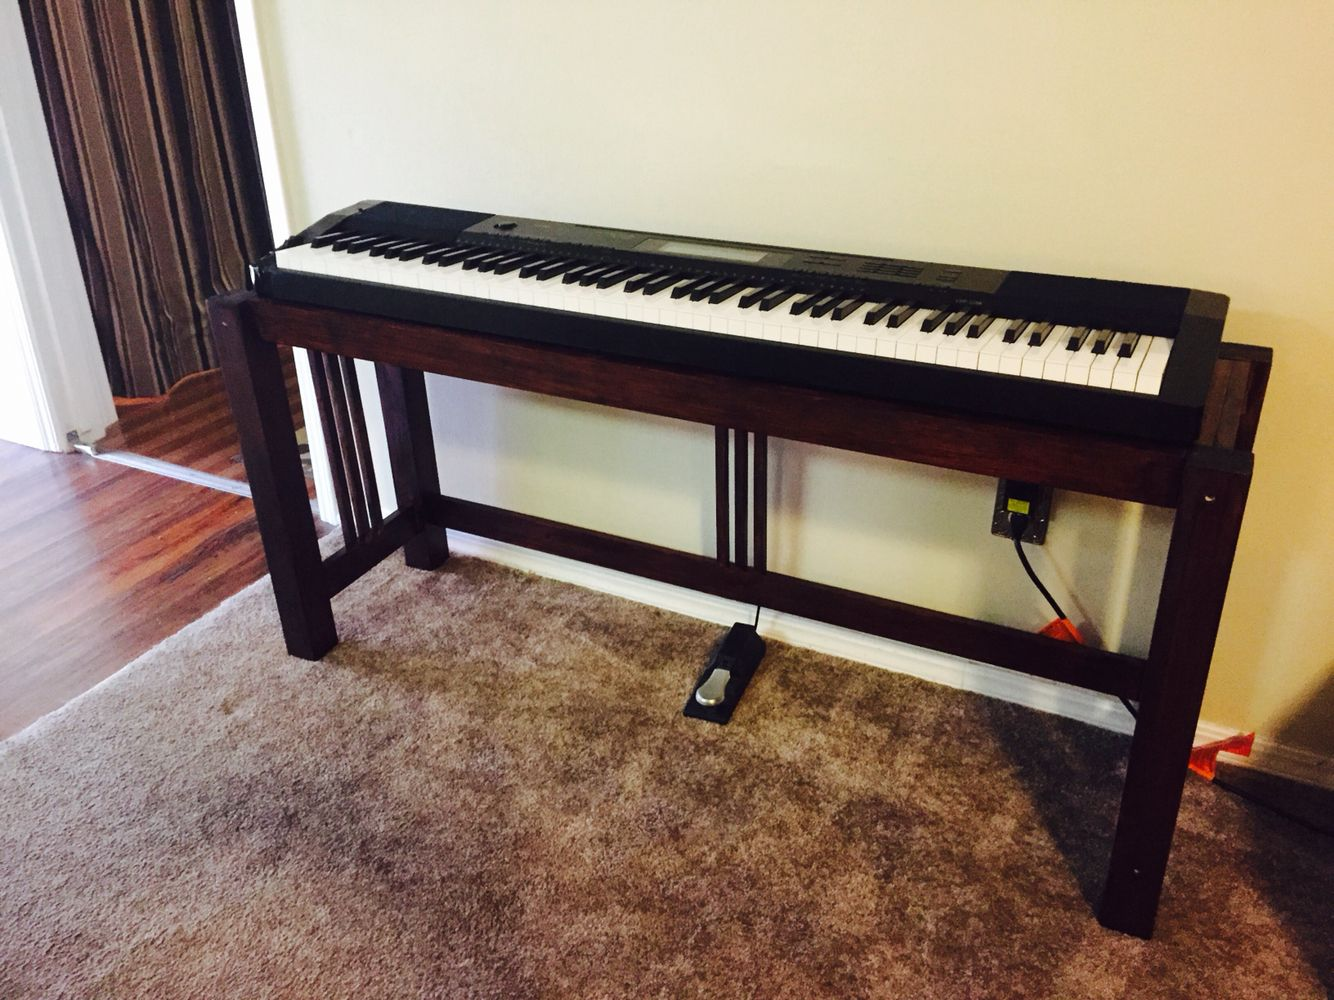 I Built A Keyboard Stand To Compliment Our Existing Mission Style Furniture.